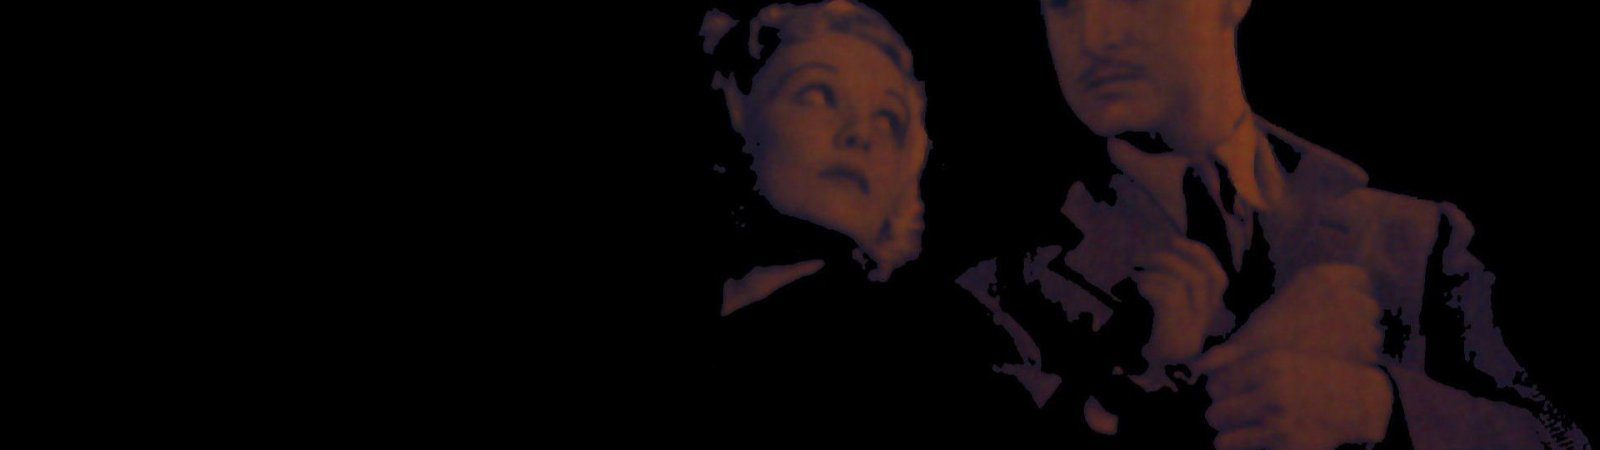 Photo dernier film Madeleine Carroll